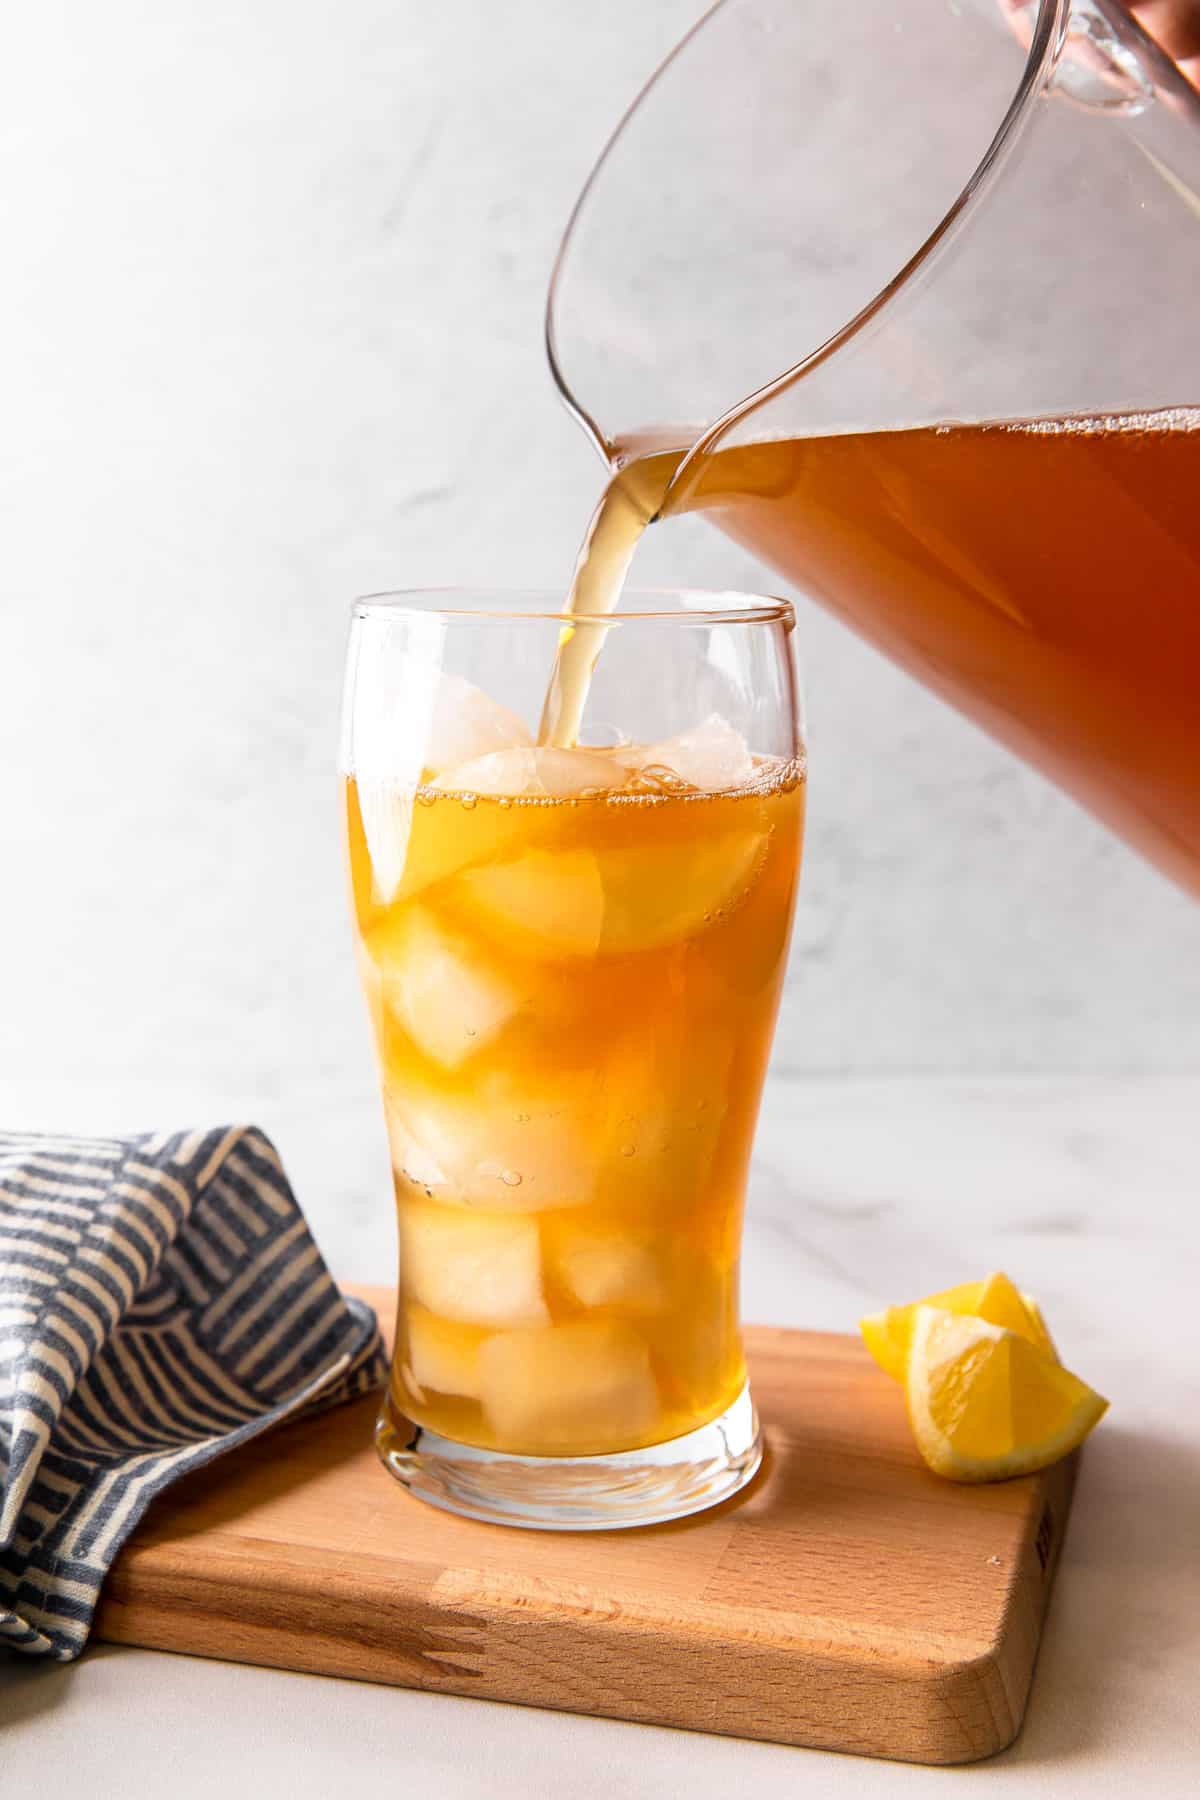 pouring iced tea lemonade mixture into a glass filled with ice